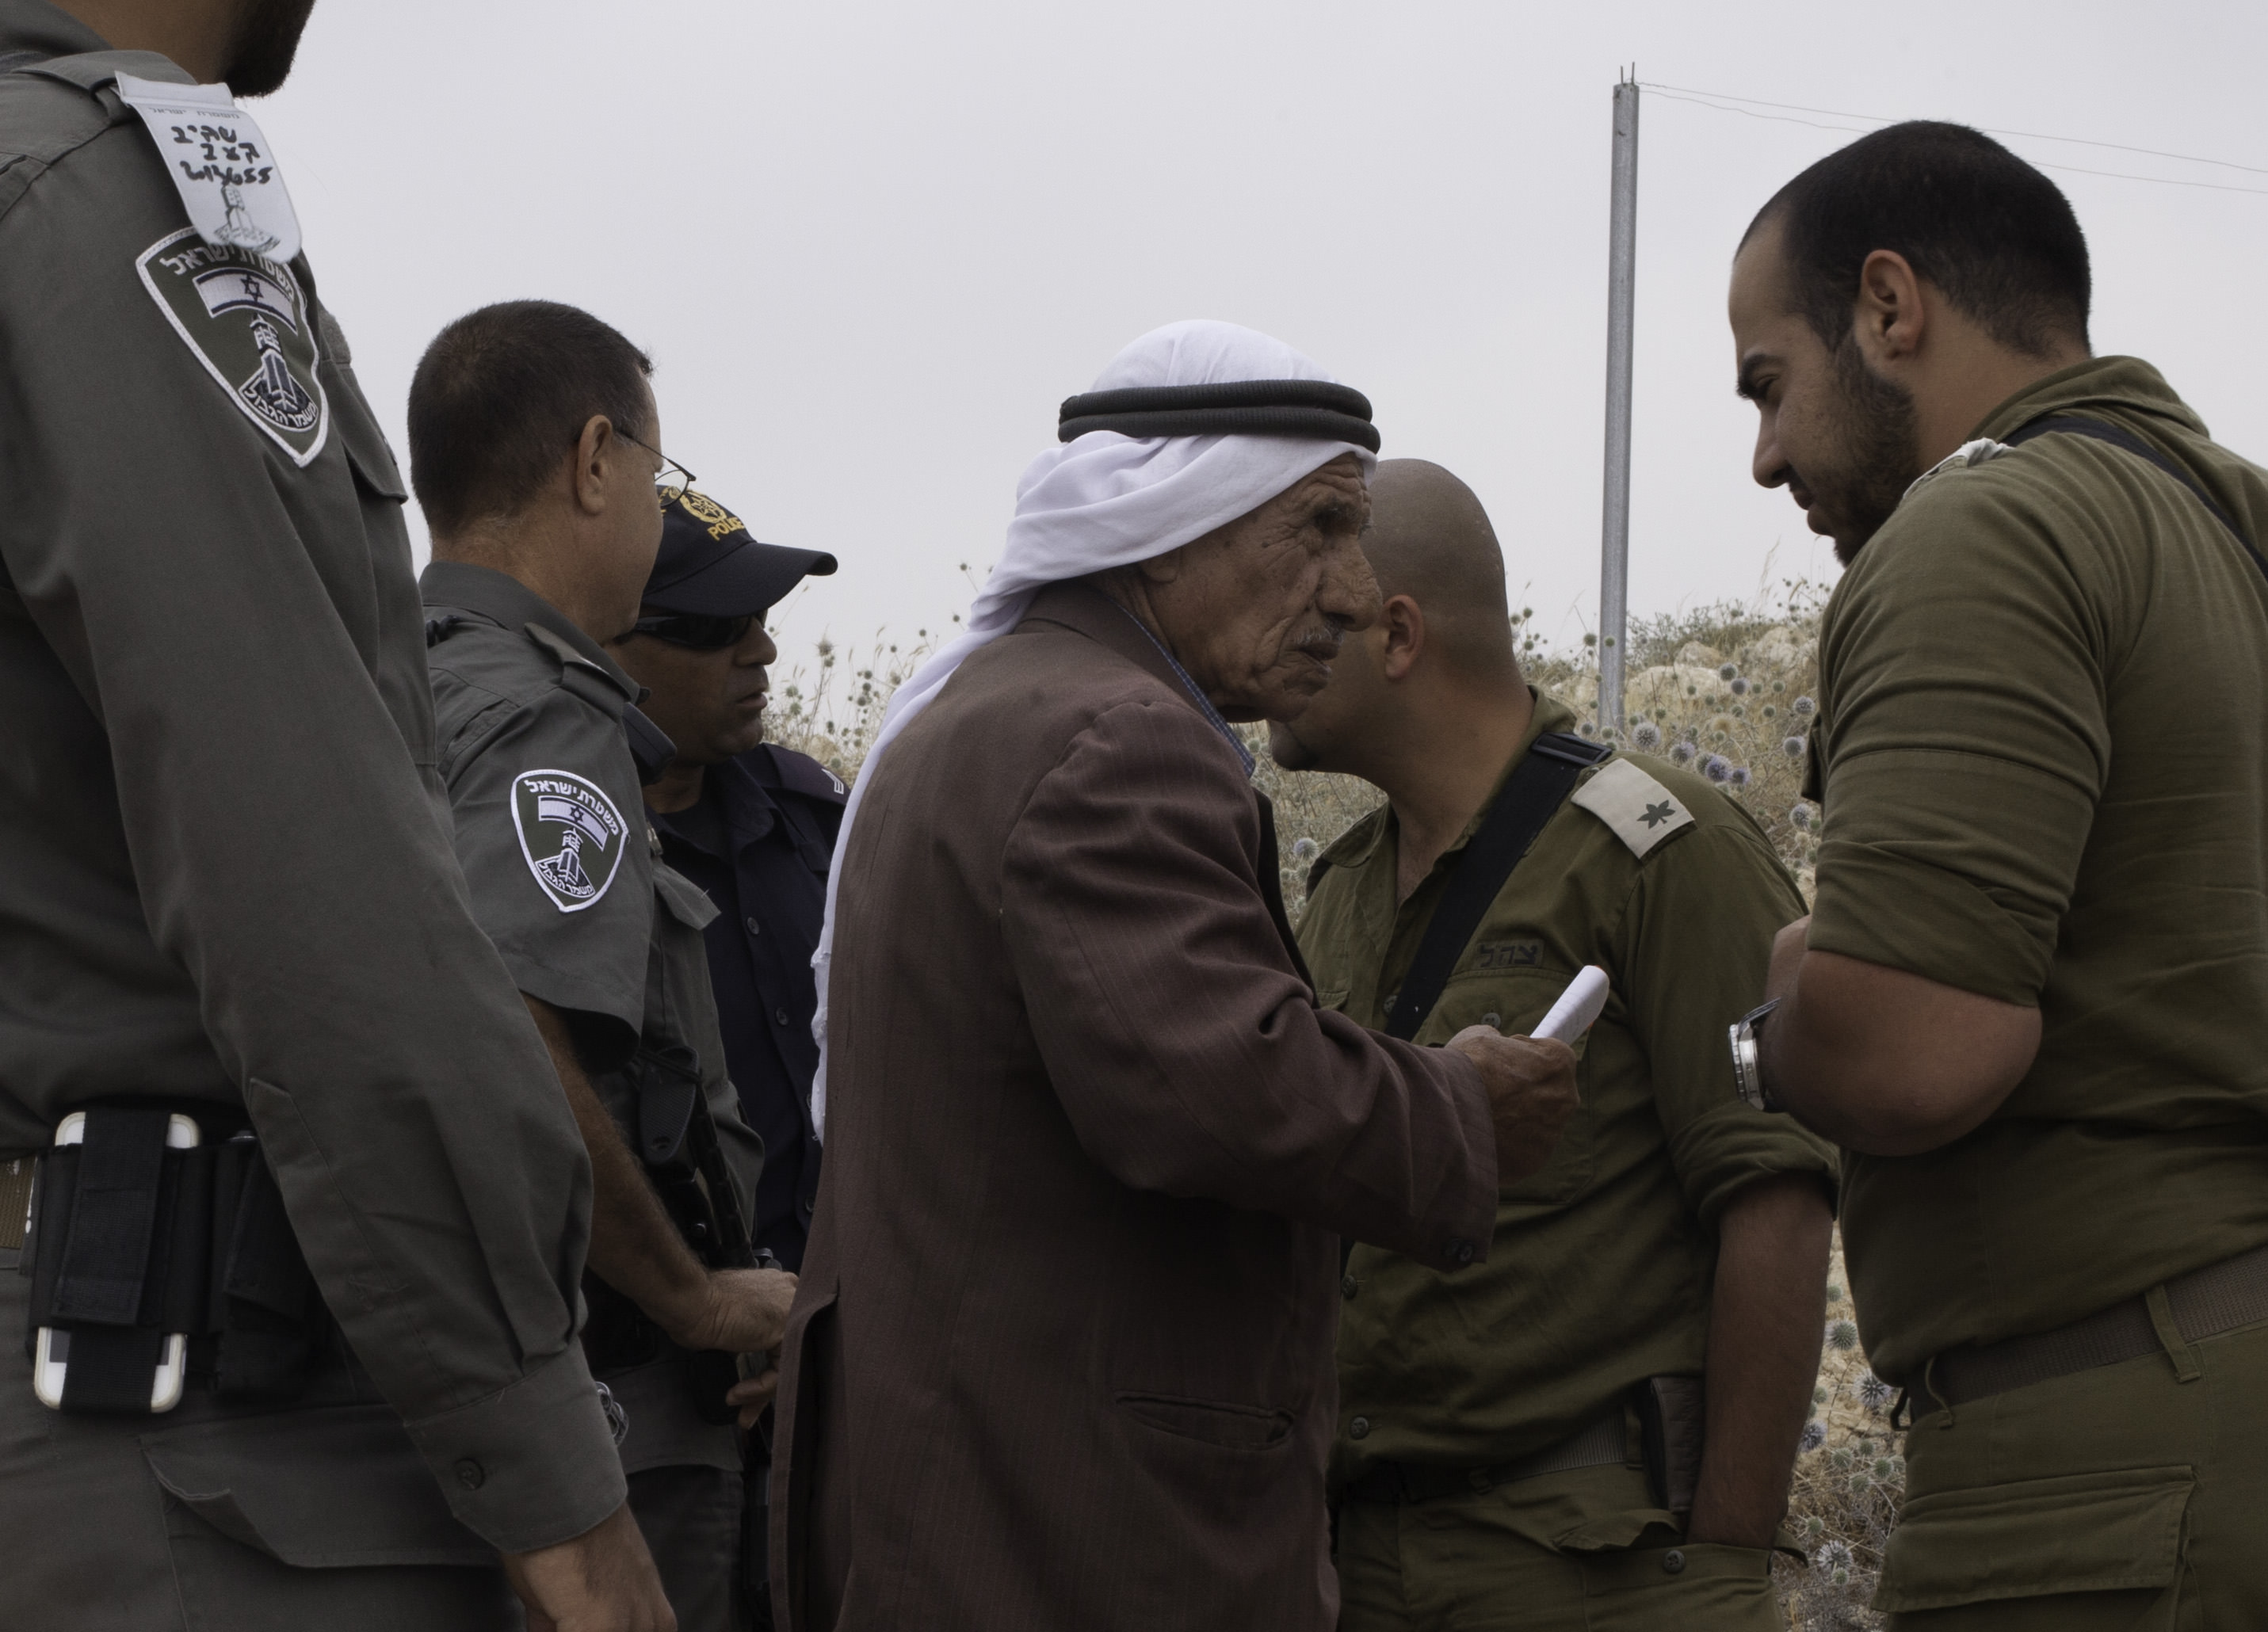 Civil Administration officers surround a Palestinian farmer near Har Mor, an outpost of the settlement Tene. South Hebron, 2014.